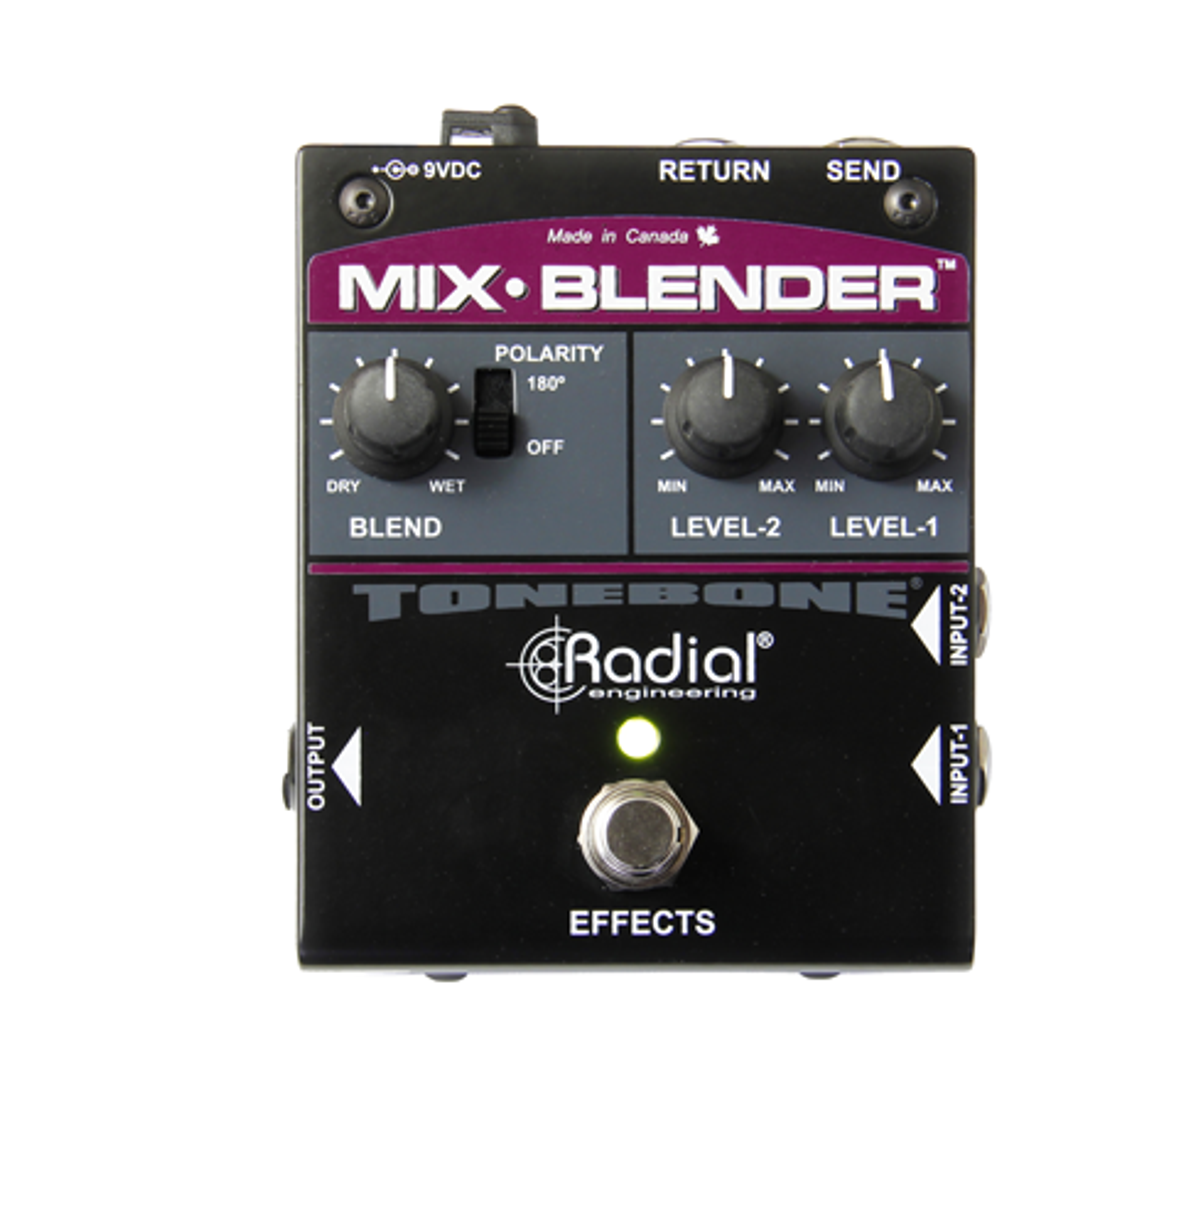 Radial Engineering Unveils the Mix-Blender